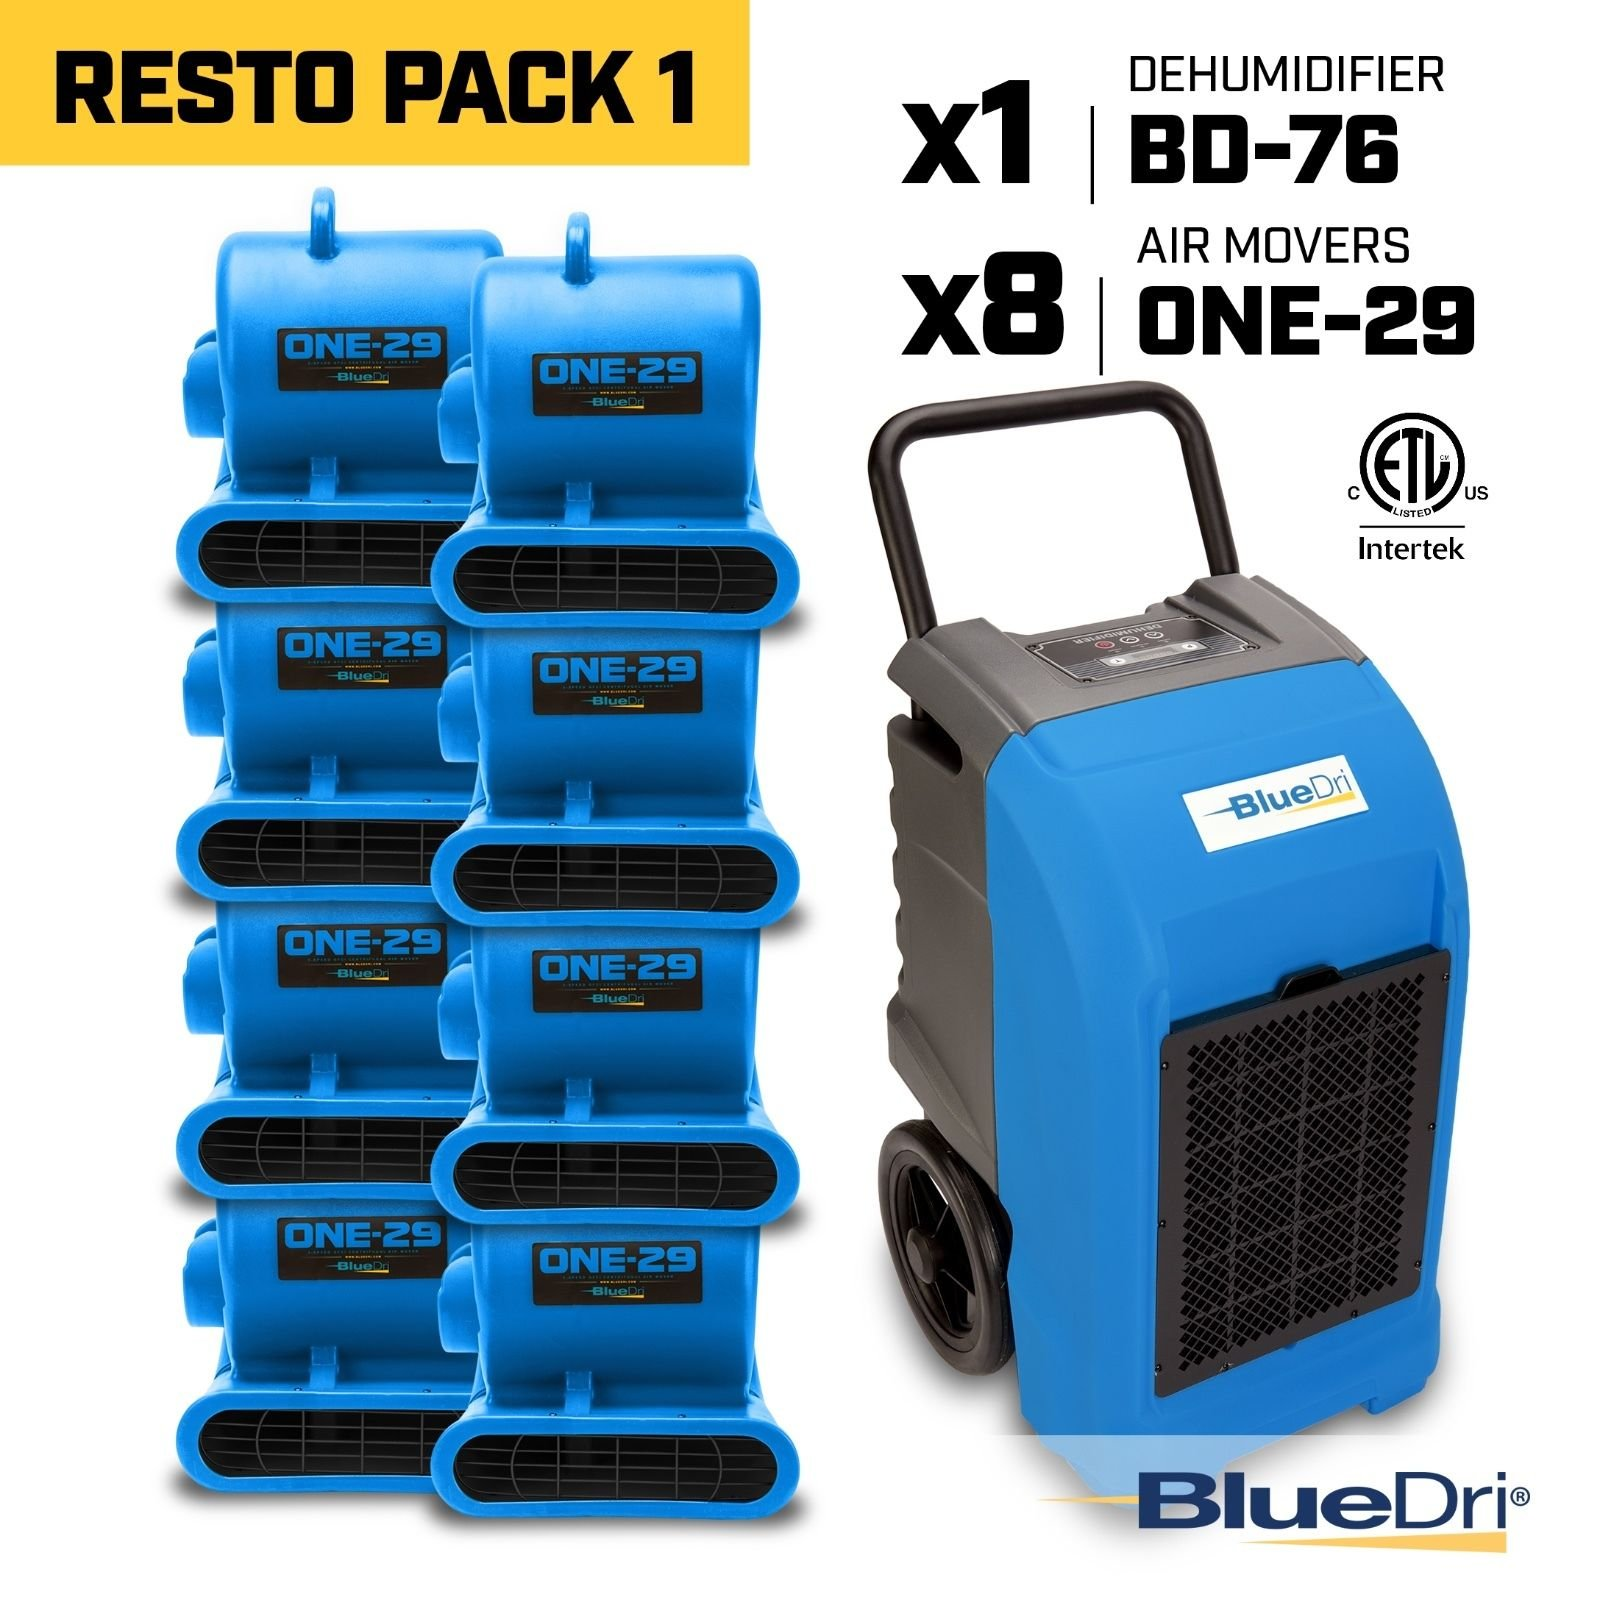 Blue BlueDri RestoPack1 includes 1x 76 Pint PPD Stackable Commercial Dehumidifiers 8x 1/3 HP 3 Speed 2.9 Amp One-29 Stackable Air Mover